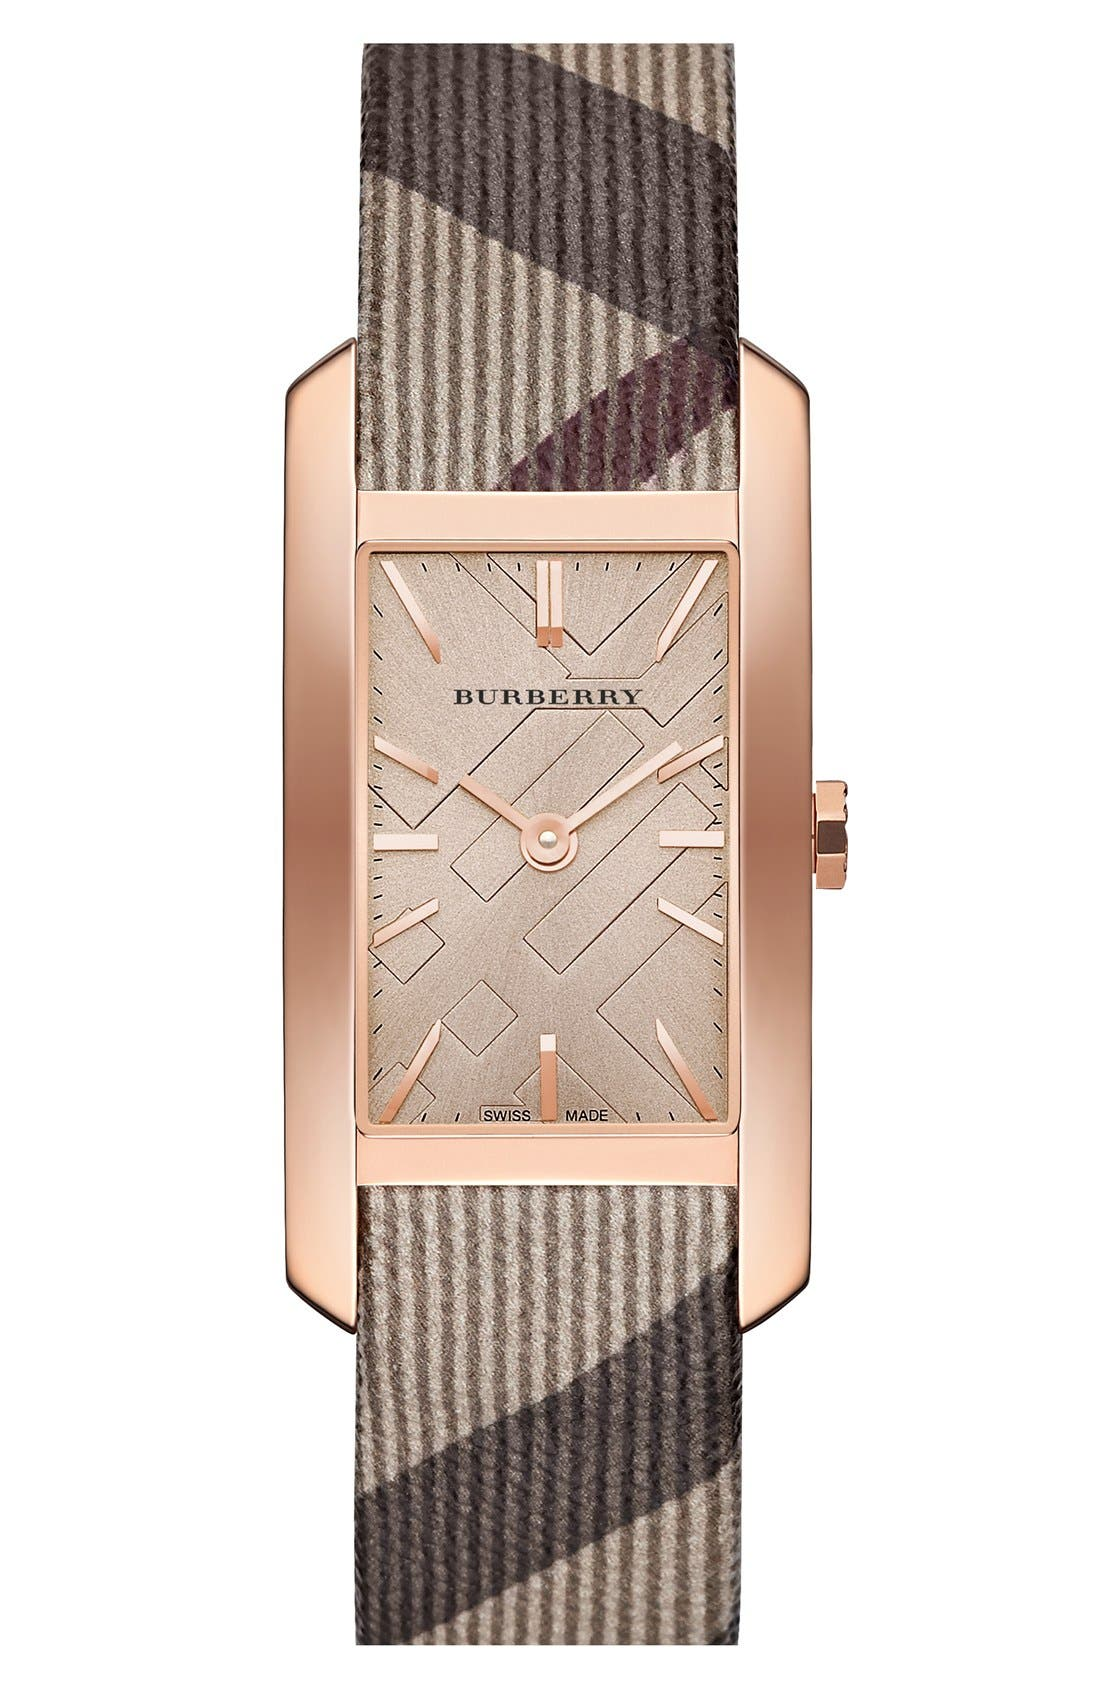 Rectangular Check Strap Watch, 25mm x 33mm, Main, color, 020